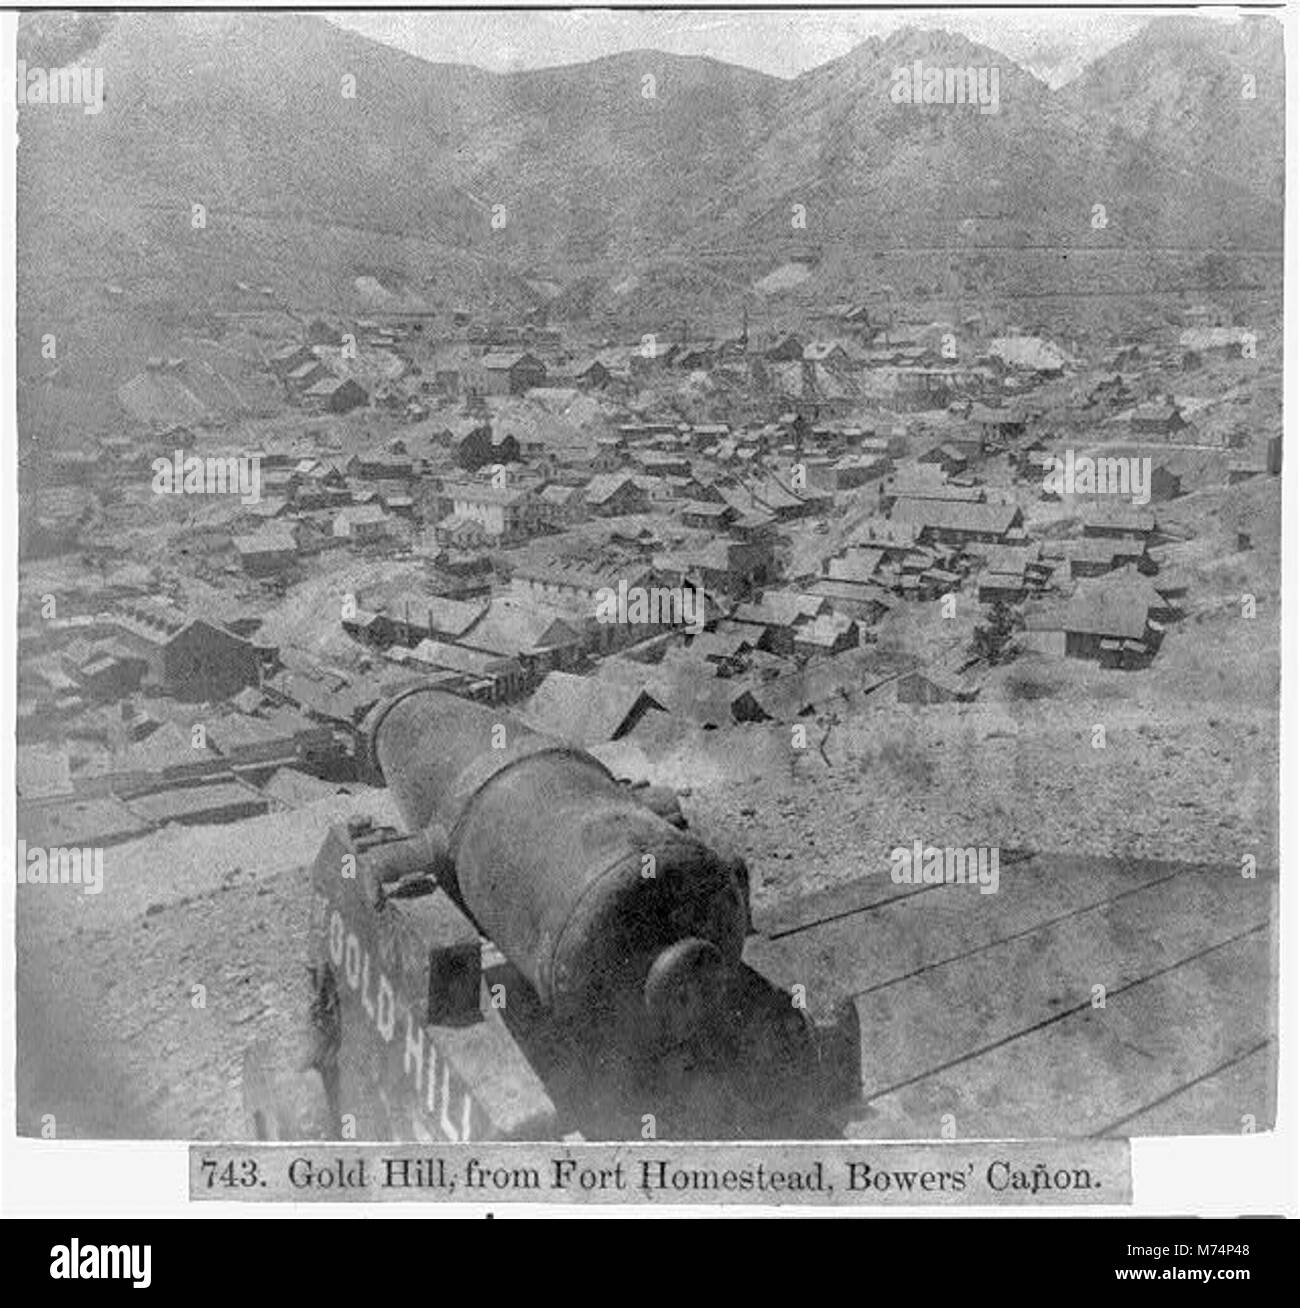 Gold Hill, Fort Homestead, Bower's Canyon LCCN2002723118 - Stock Image